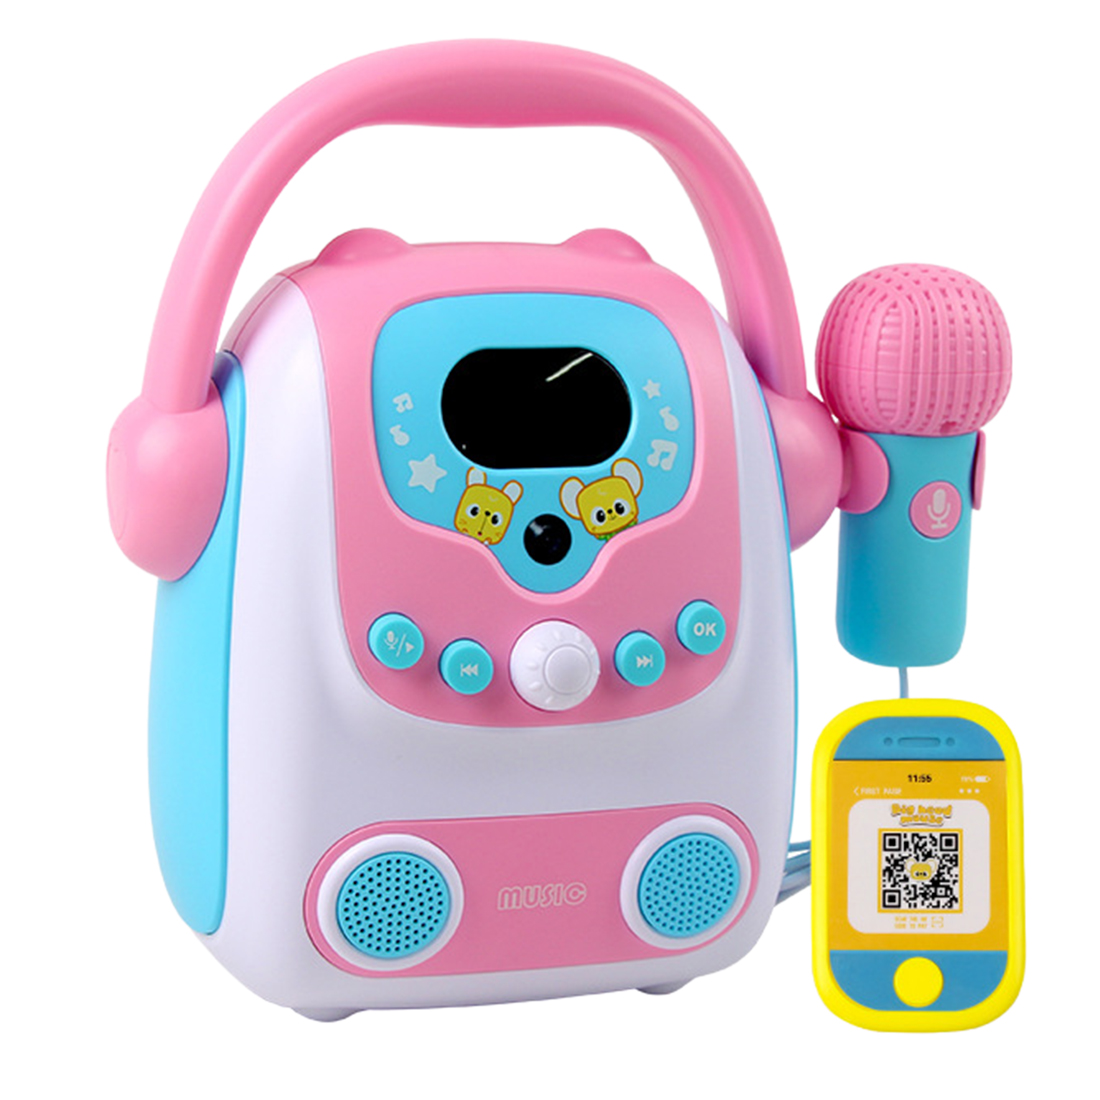 Microphone Karaoke Bluetooth Speaker Toy Portable Karaoke Machine Developmental Music Educational Toys For Kids Gift - Pink Blue